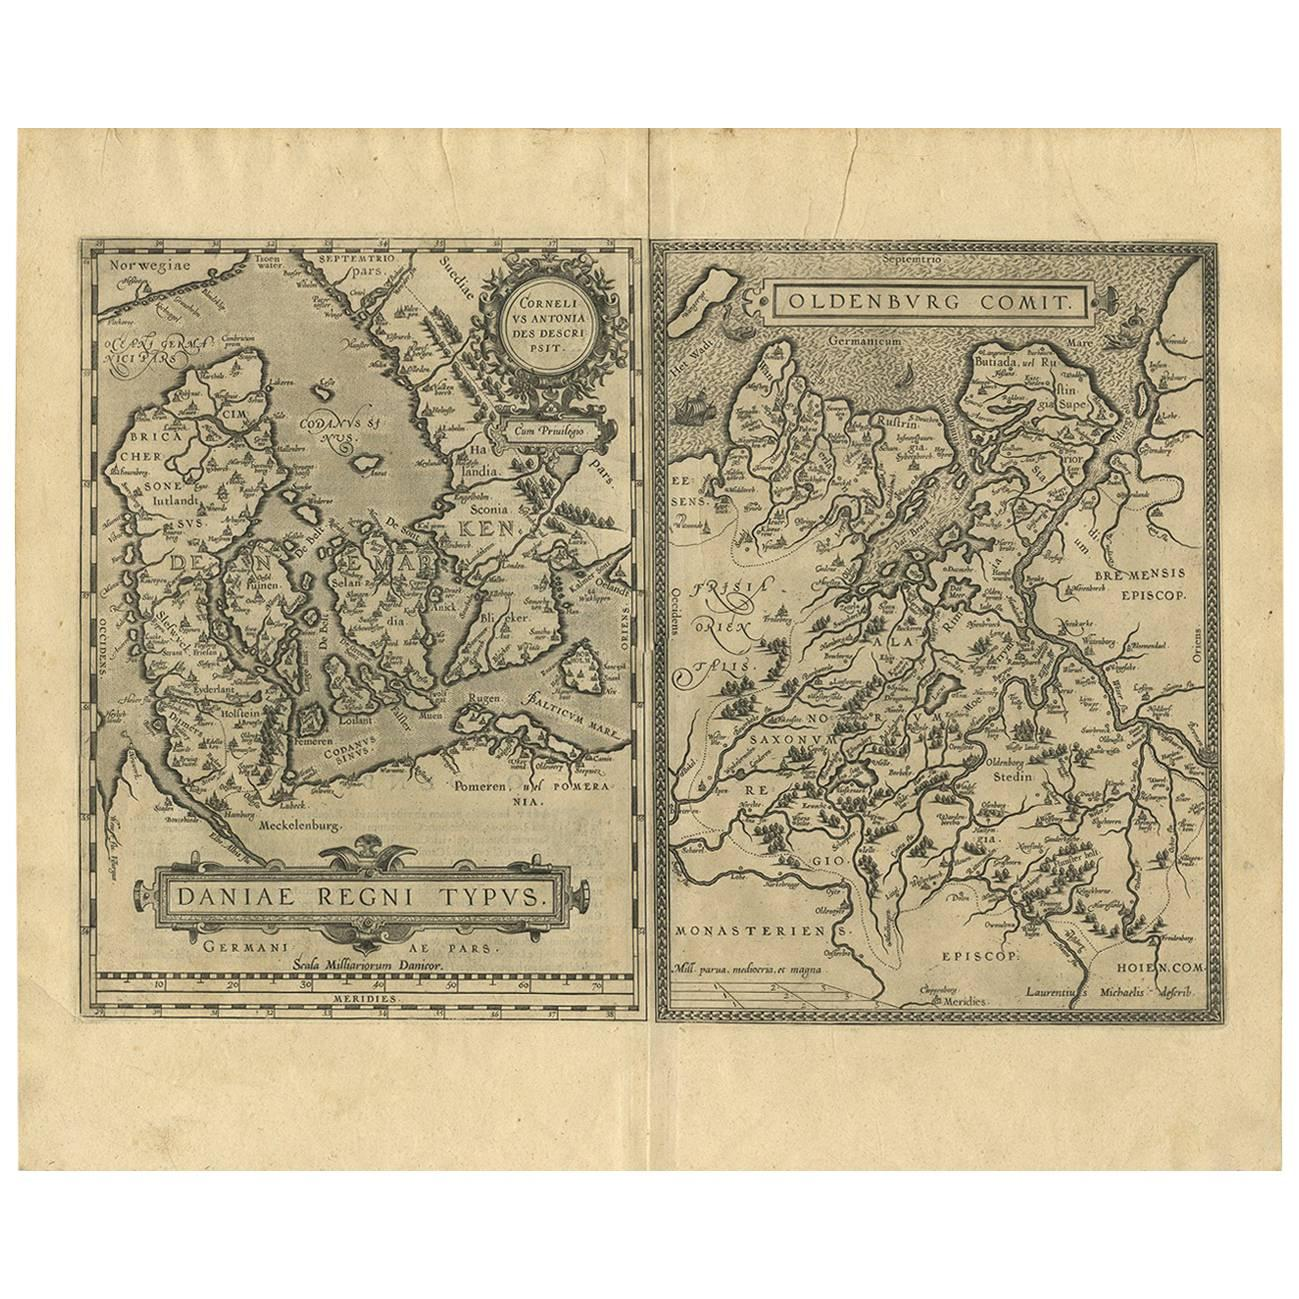 Antique Map of Denmark and Oldenburg 'Germany' by A. Ortelius, circa 1598